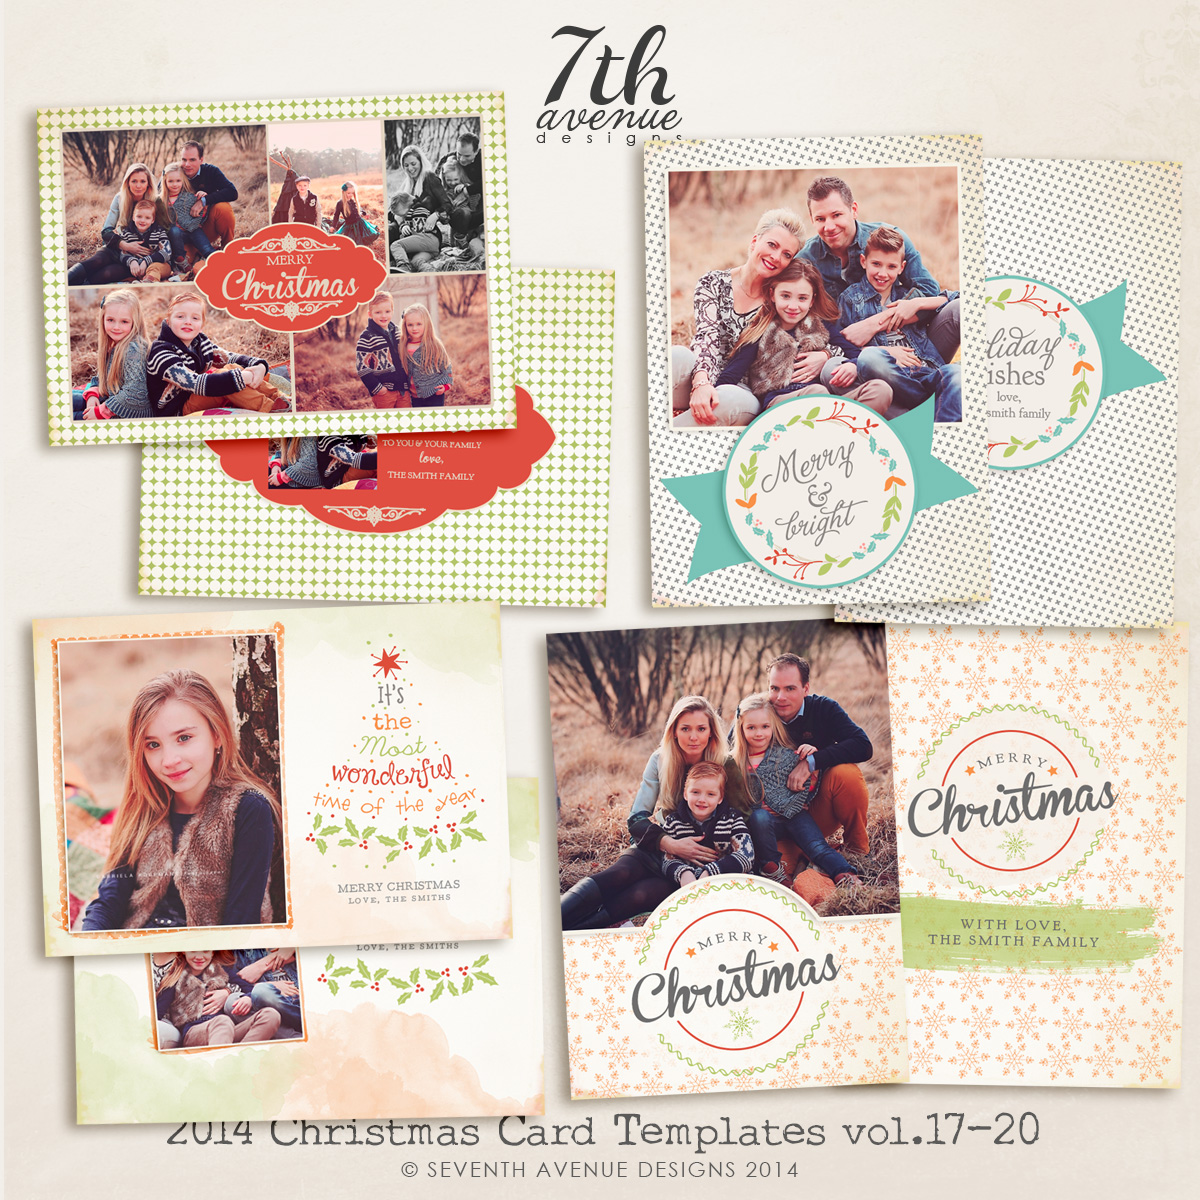 2014 Christmas Card Templates Bundle 4 -- 7x5 inch card template